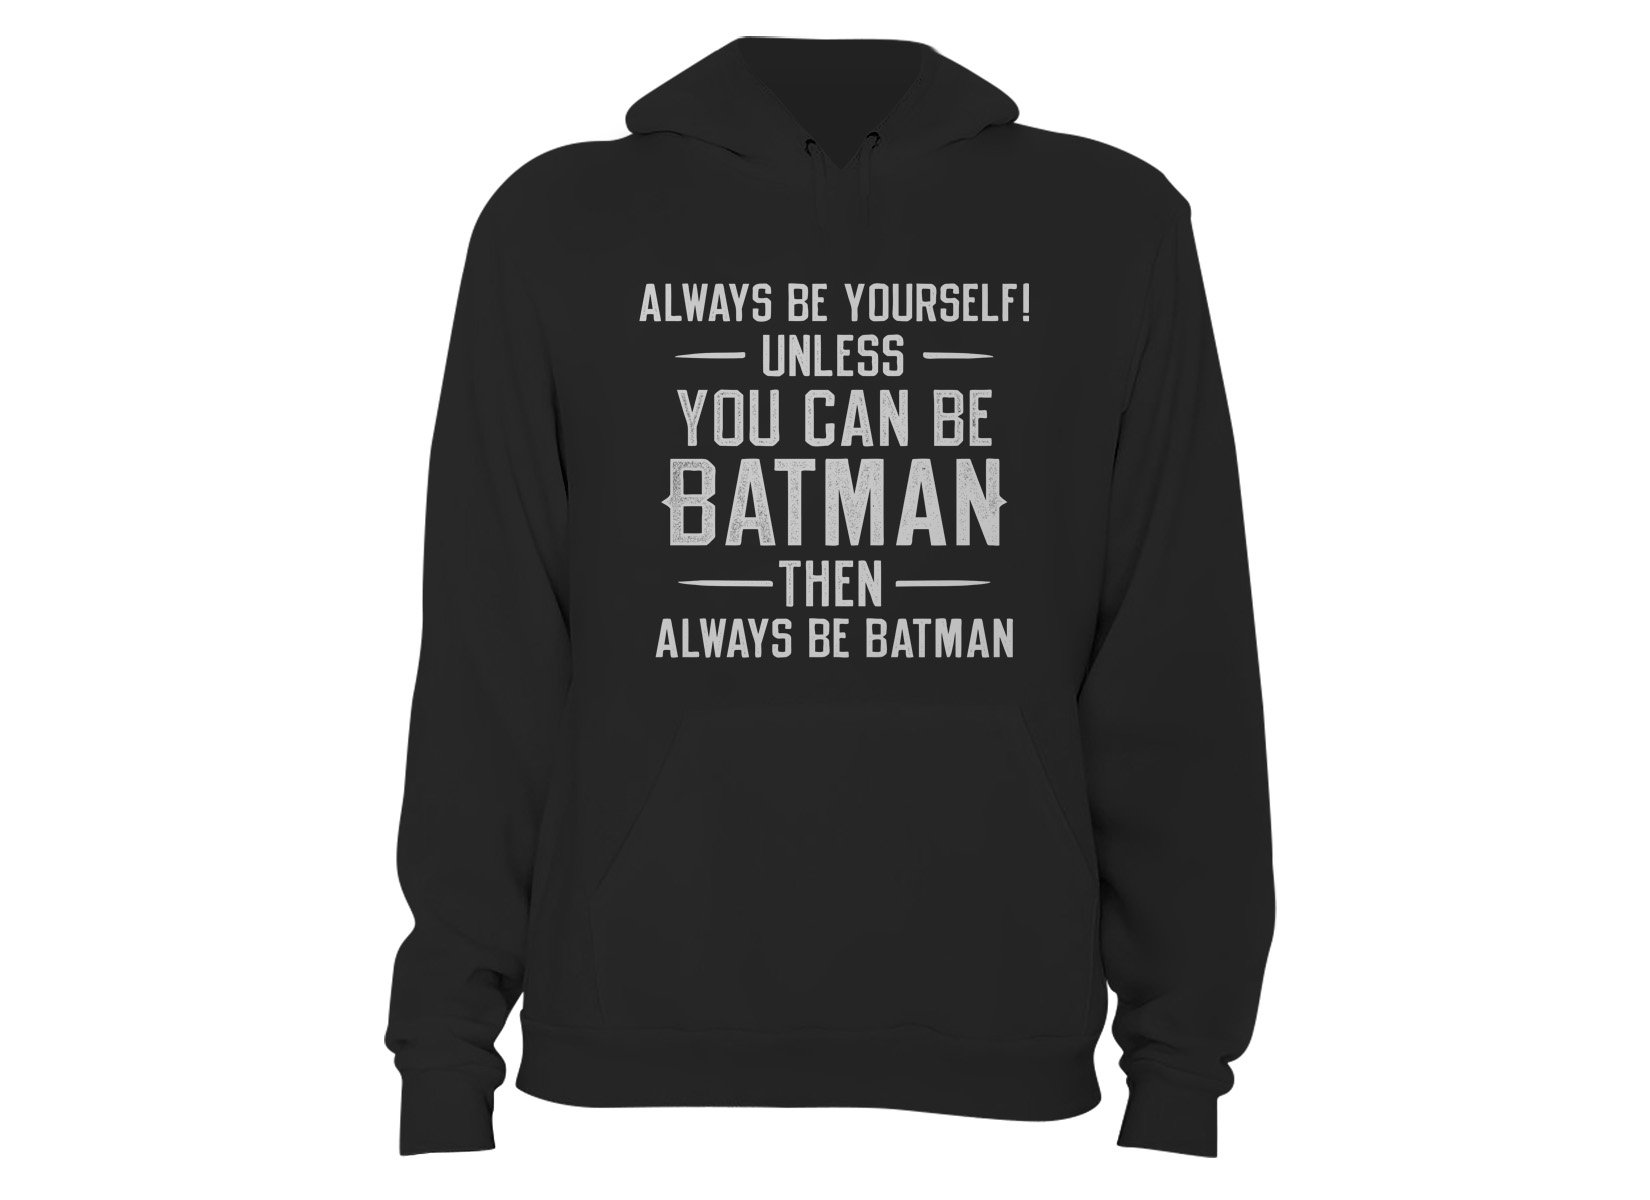 Always Be Yourself on Hoodie